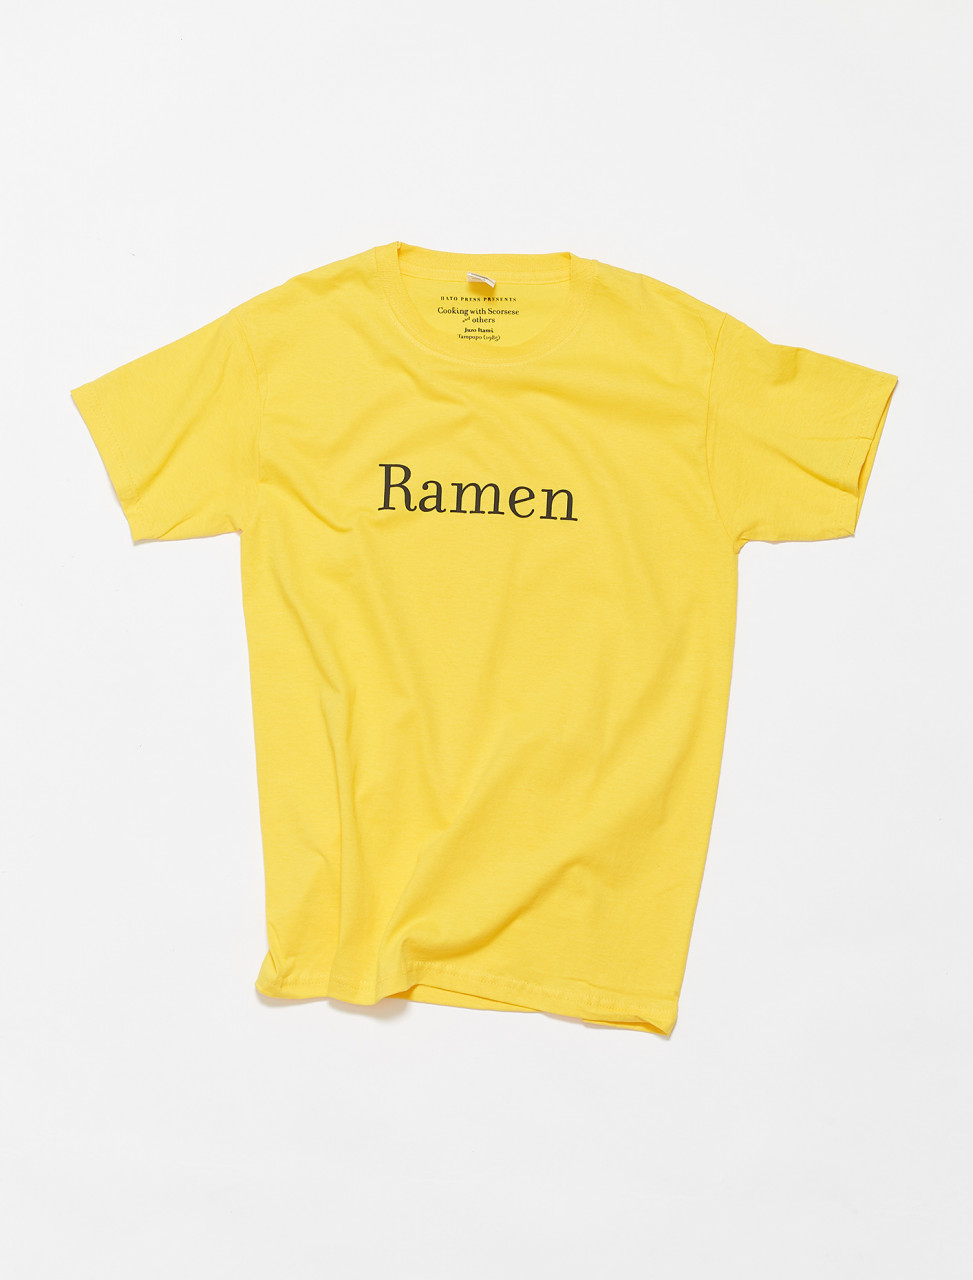 RAMEN-YEL HATO PRESS RAMEN T-SHIRT YELLOW